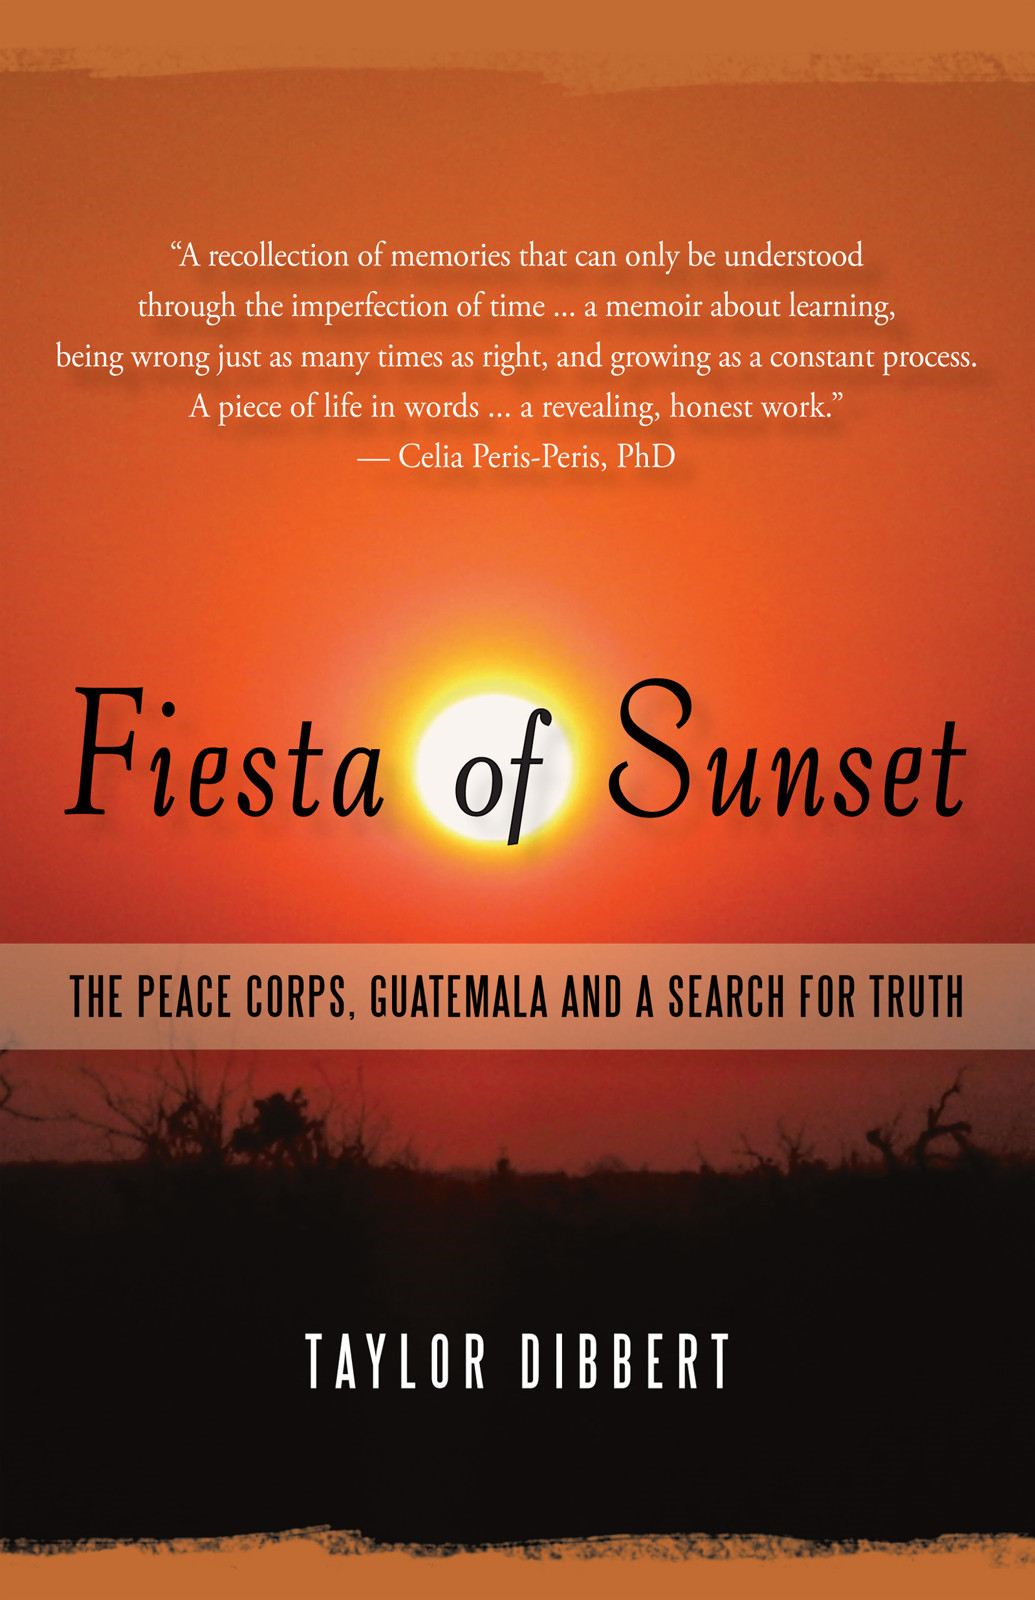 Fiesta of Sunset